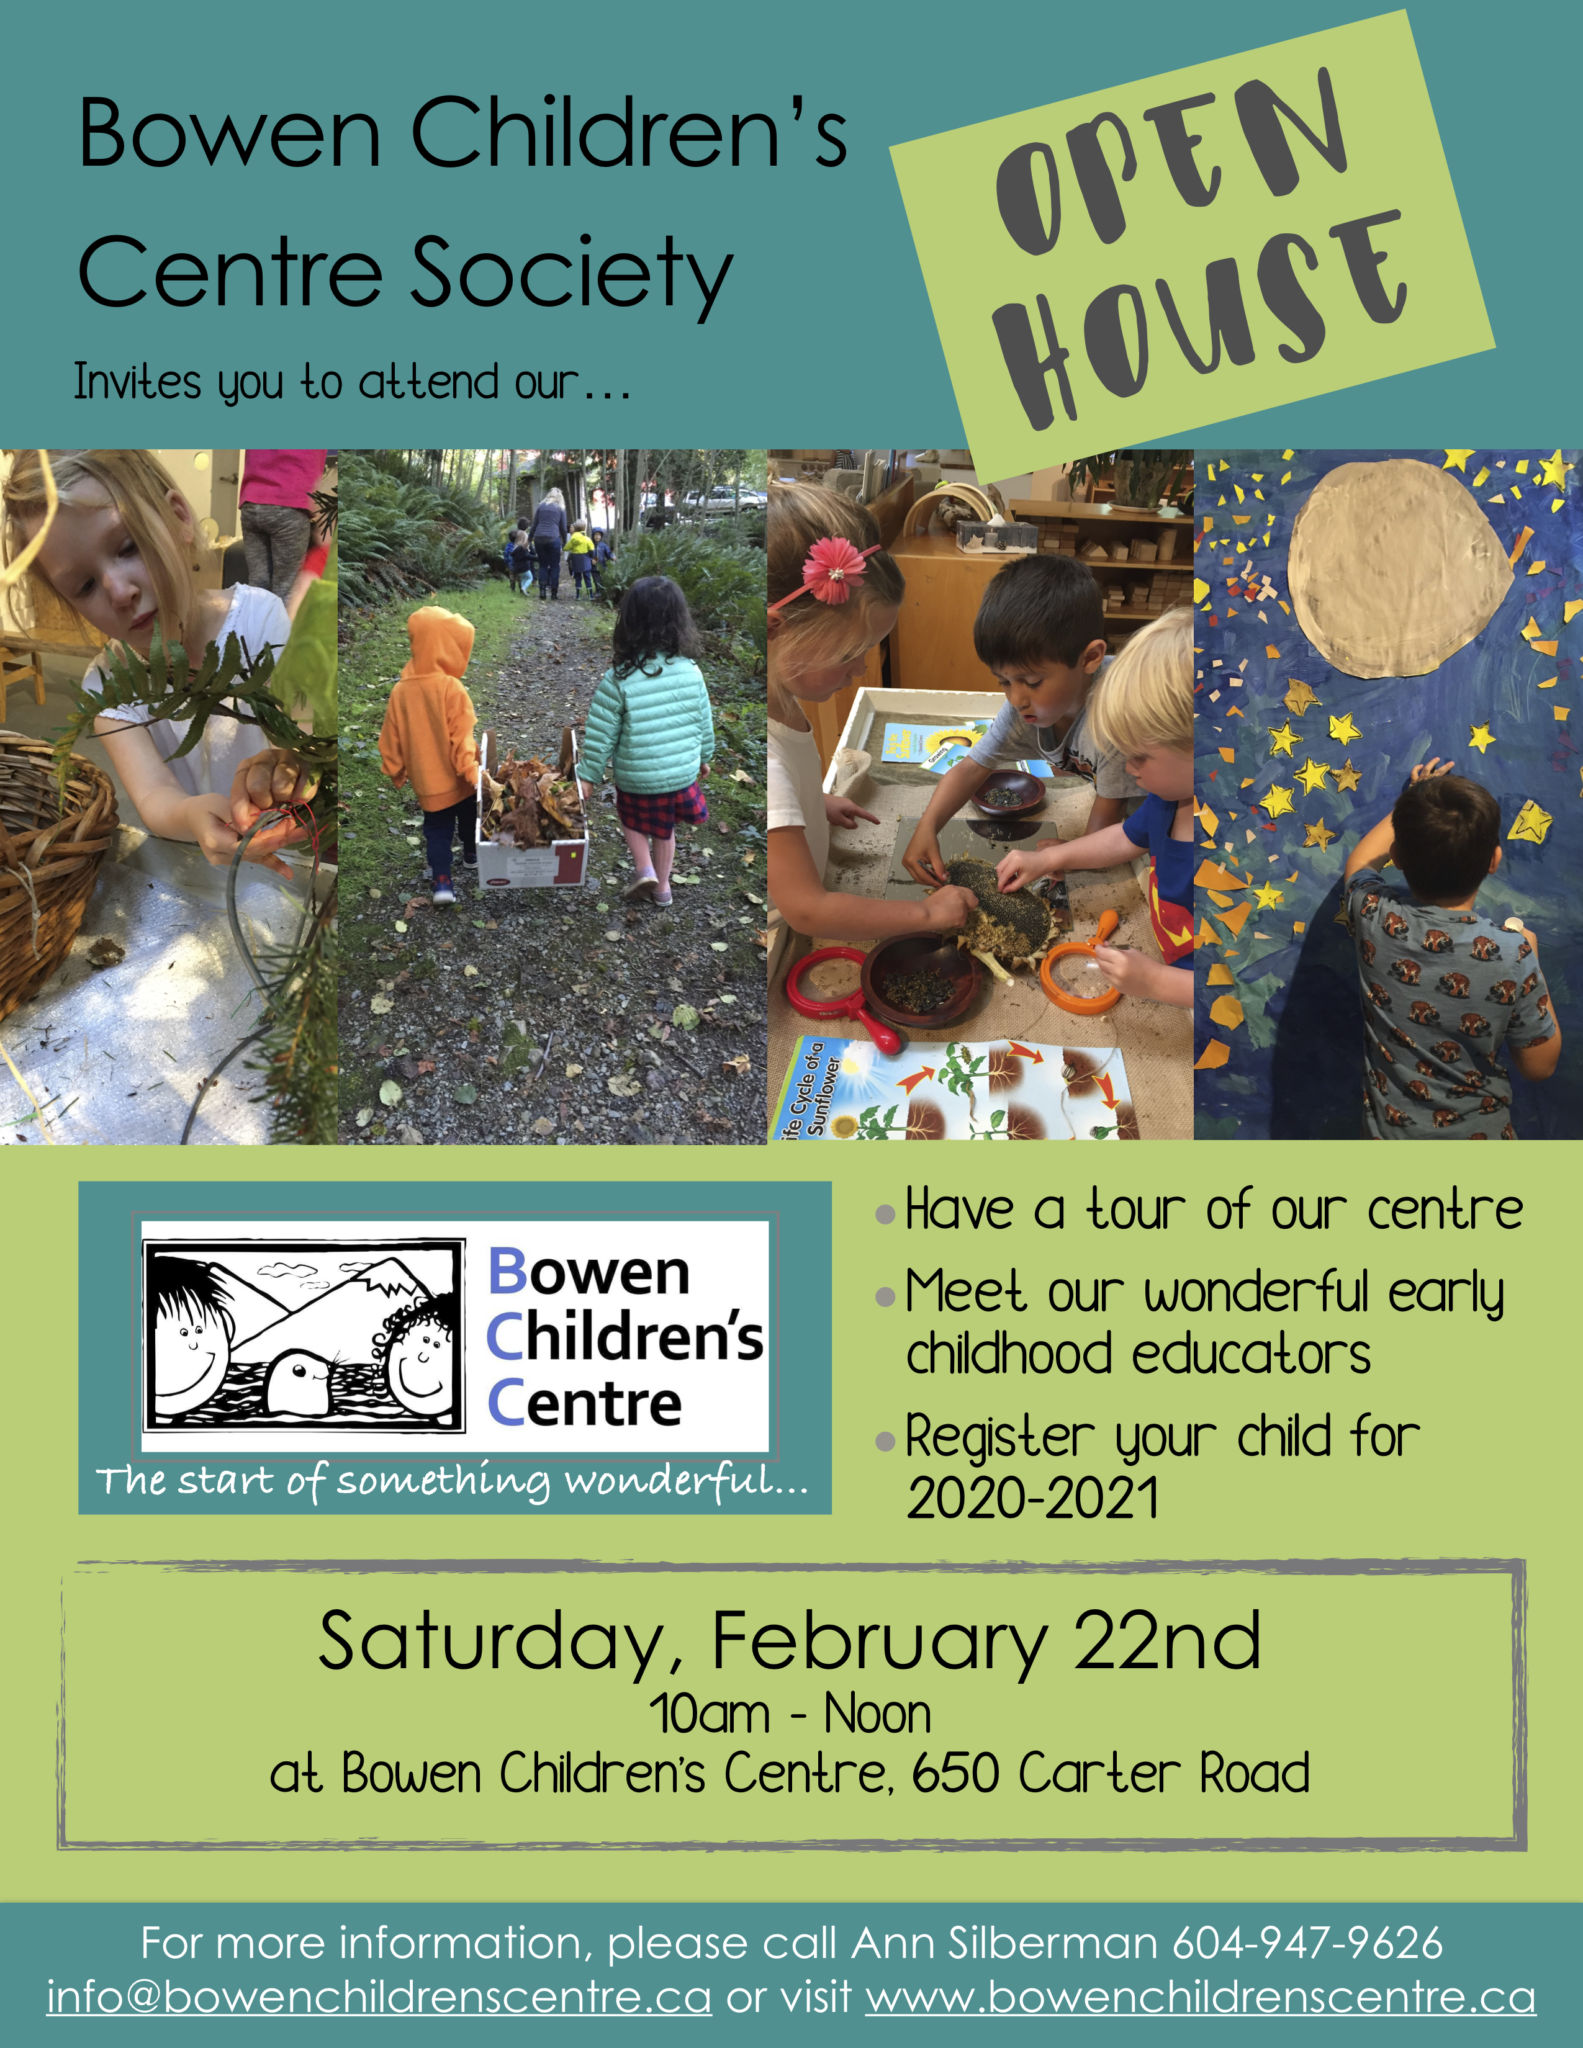 Join our Open house on Saturday February 22nd!